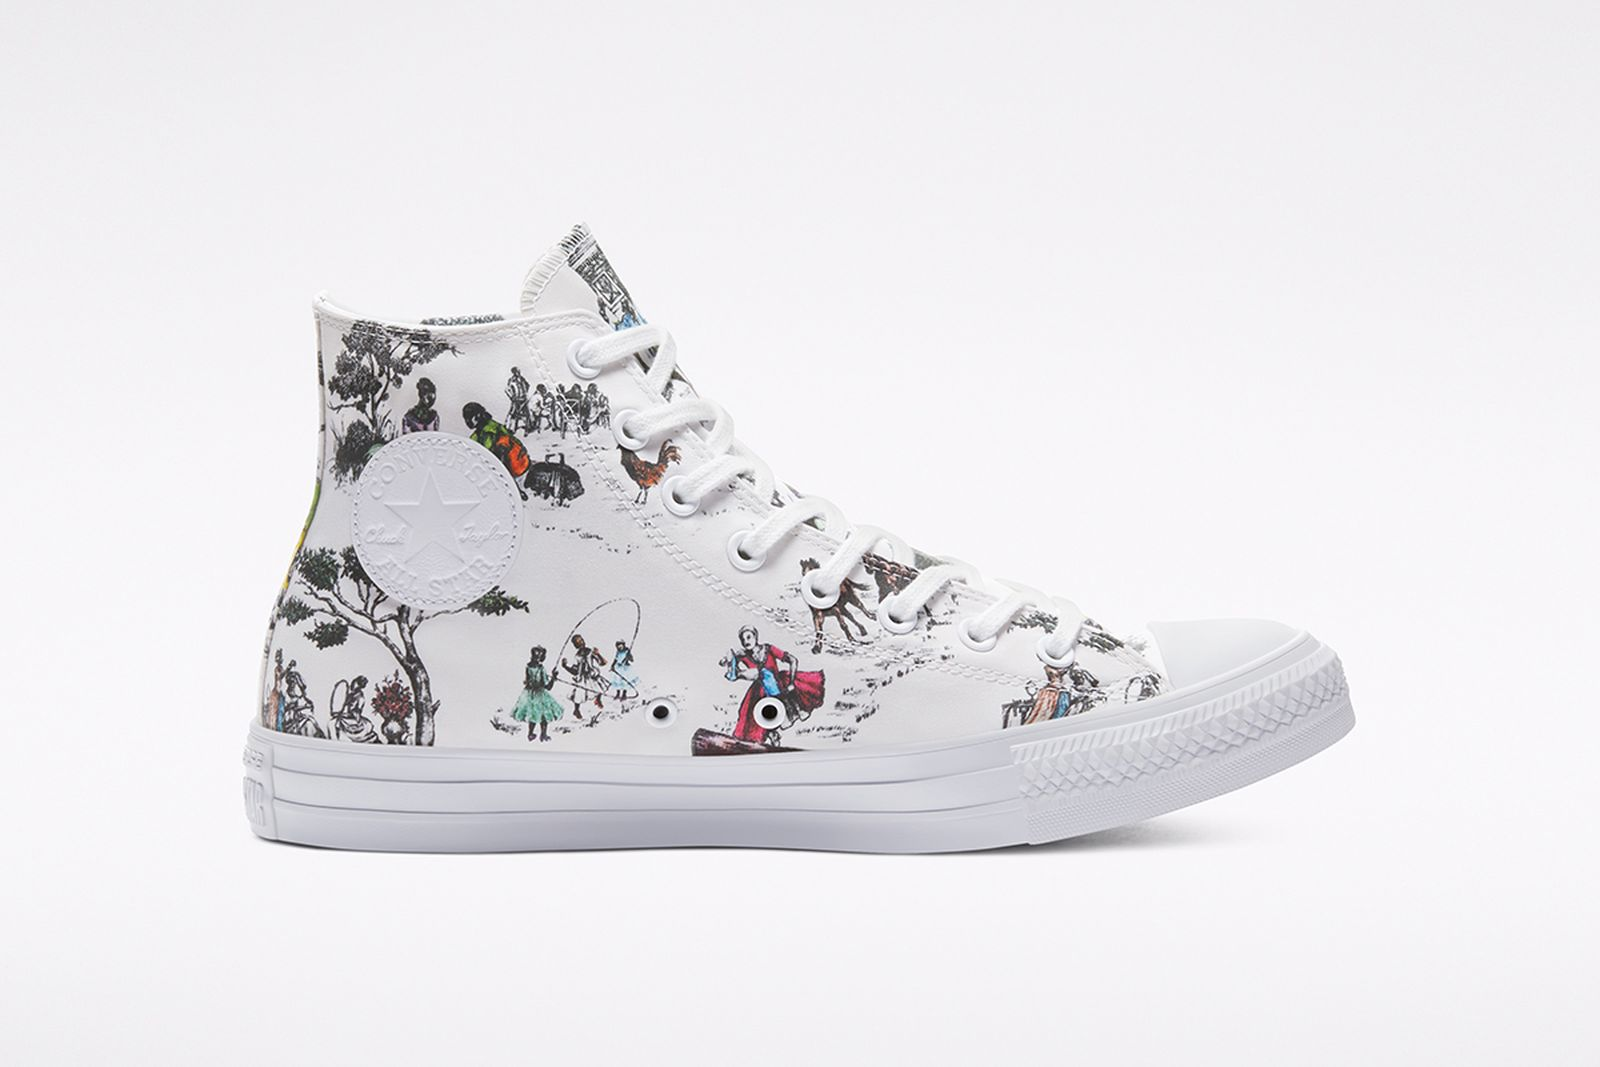 union-converse-chuck-taylor-all-star-release-date-price-1-01